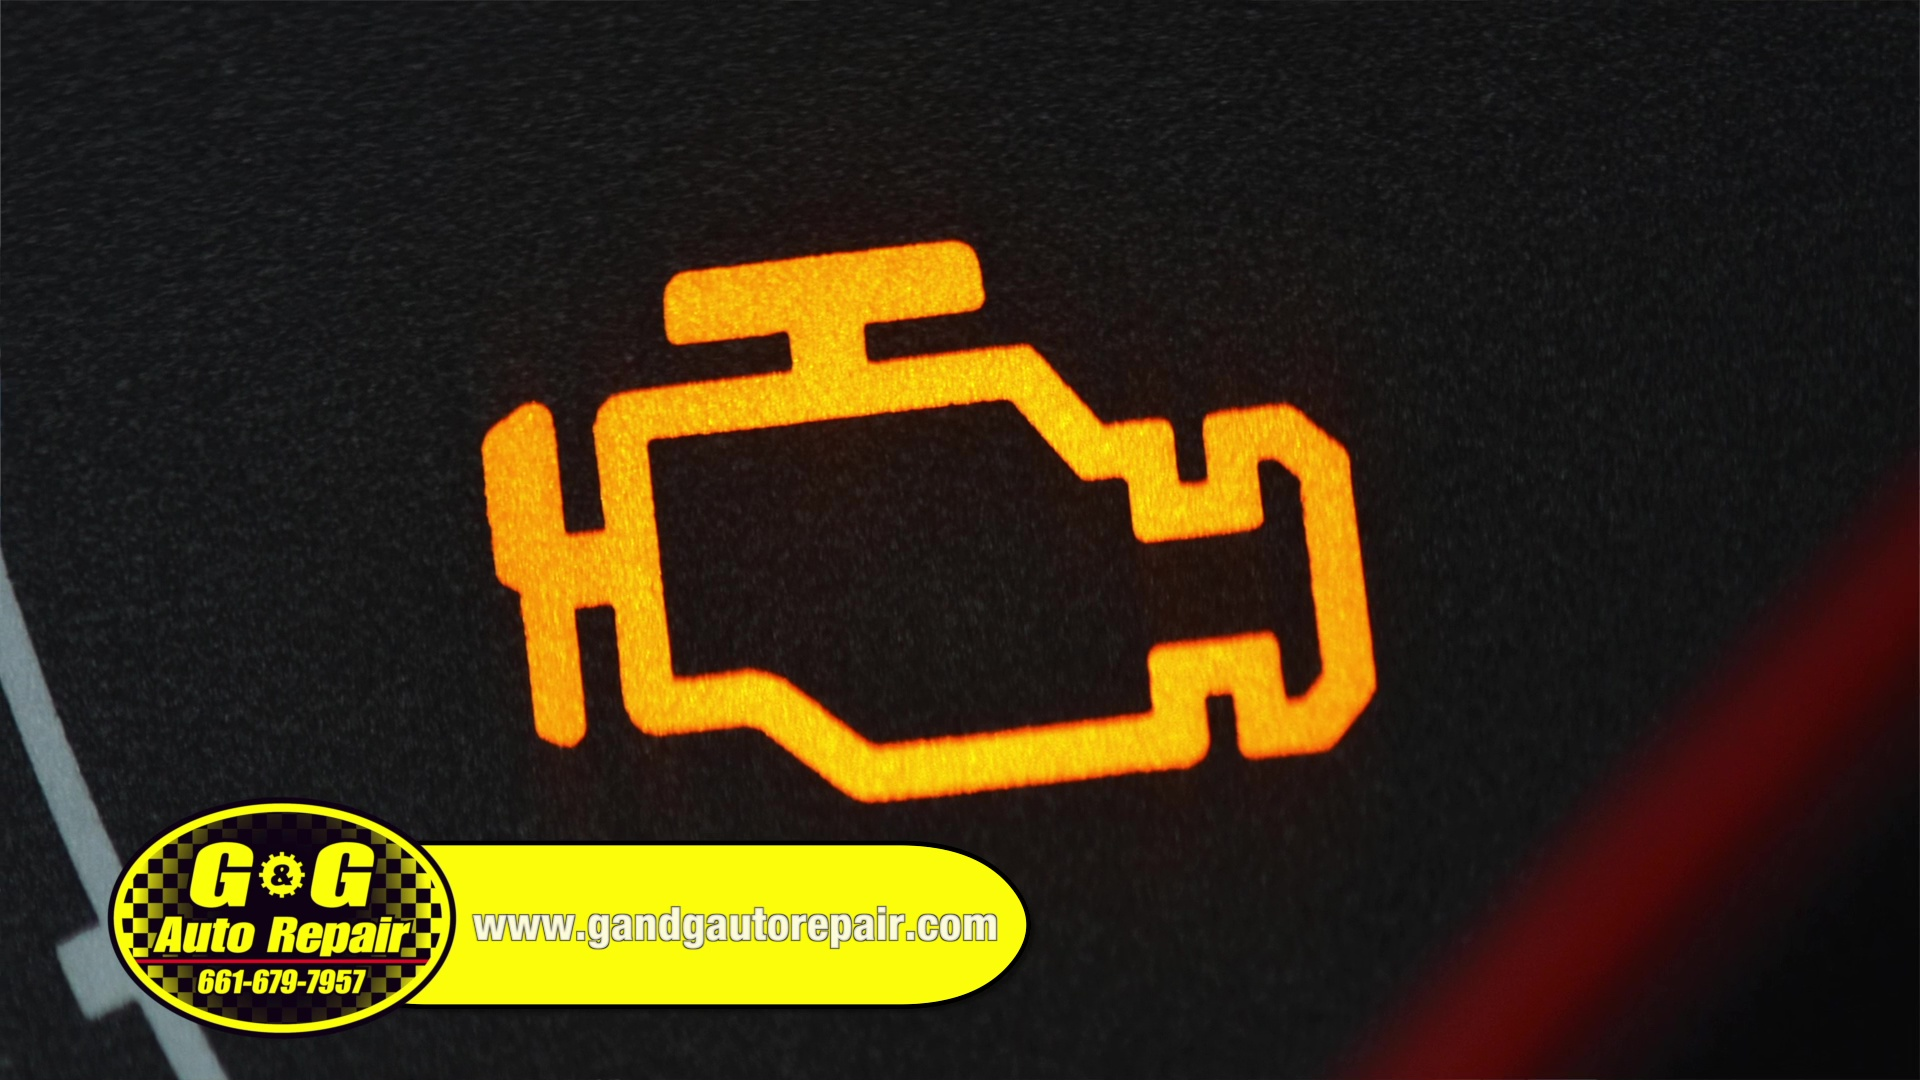 Check Engine Light - G&G Automotive